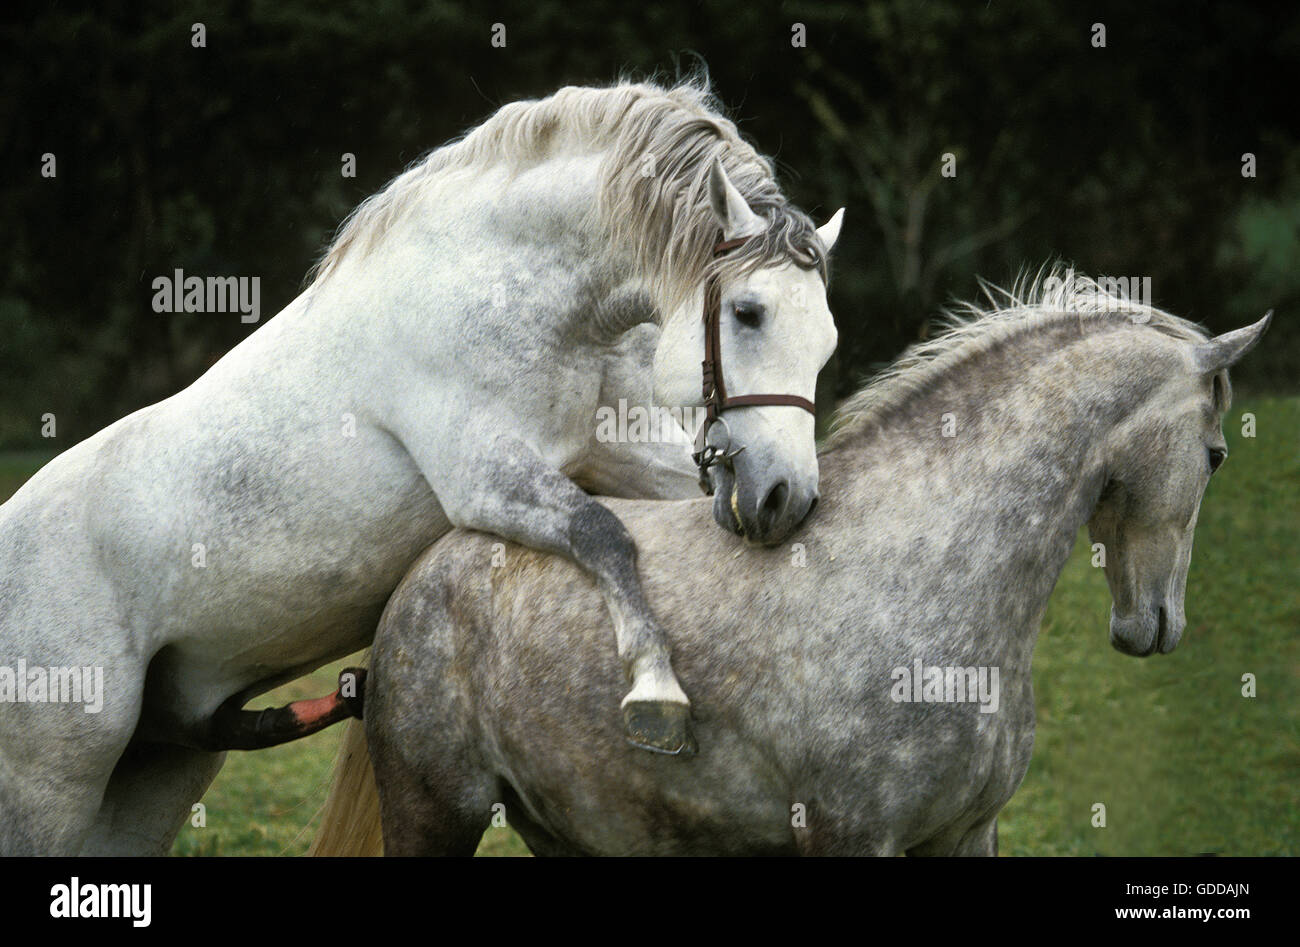 LIPIZZAN HORSE, MARE AND STALLION MATING Stock Photo ...